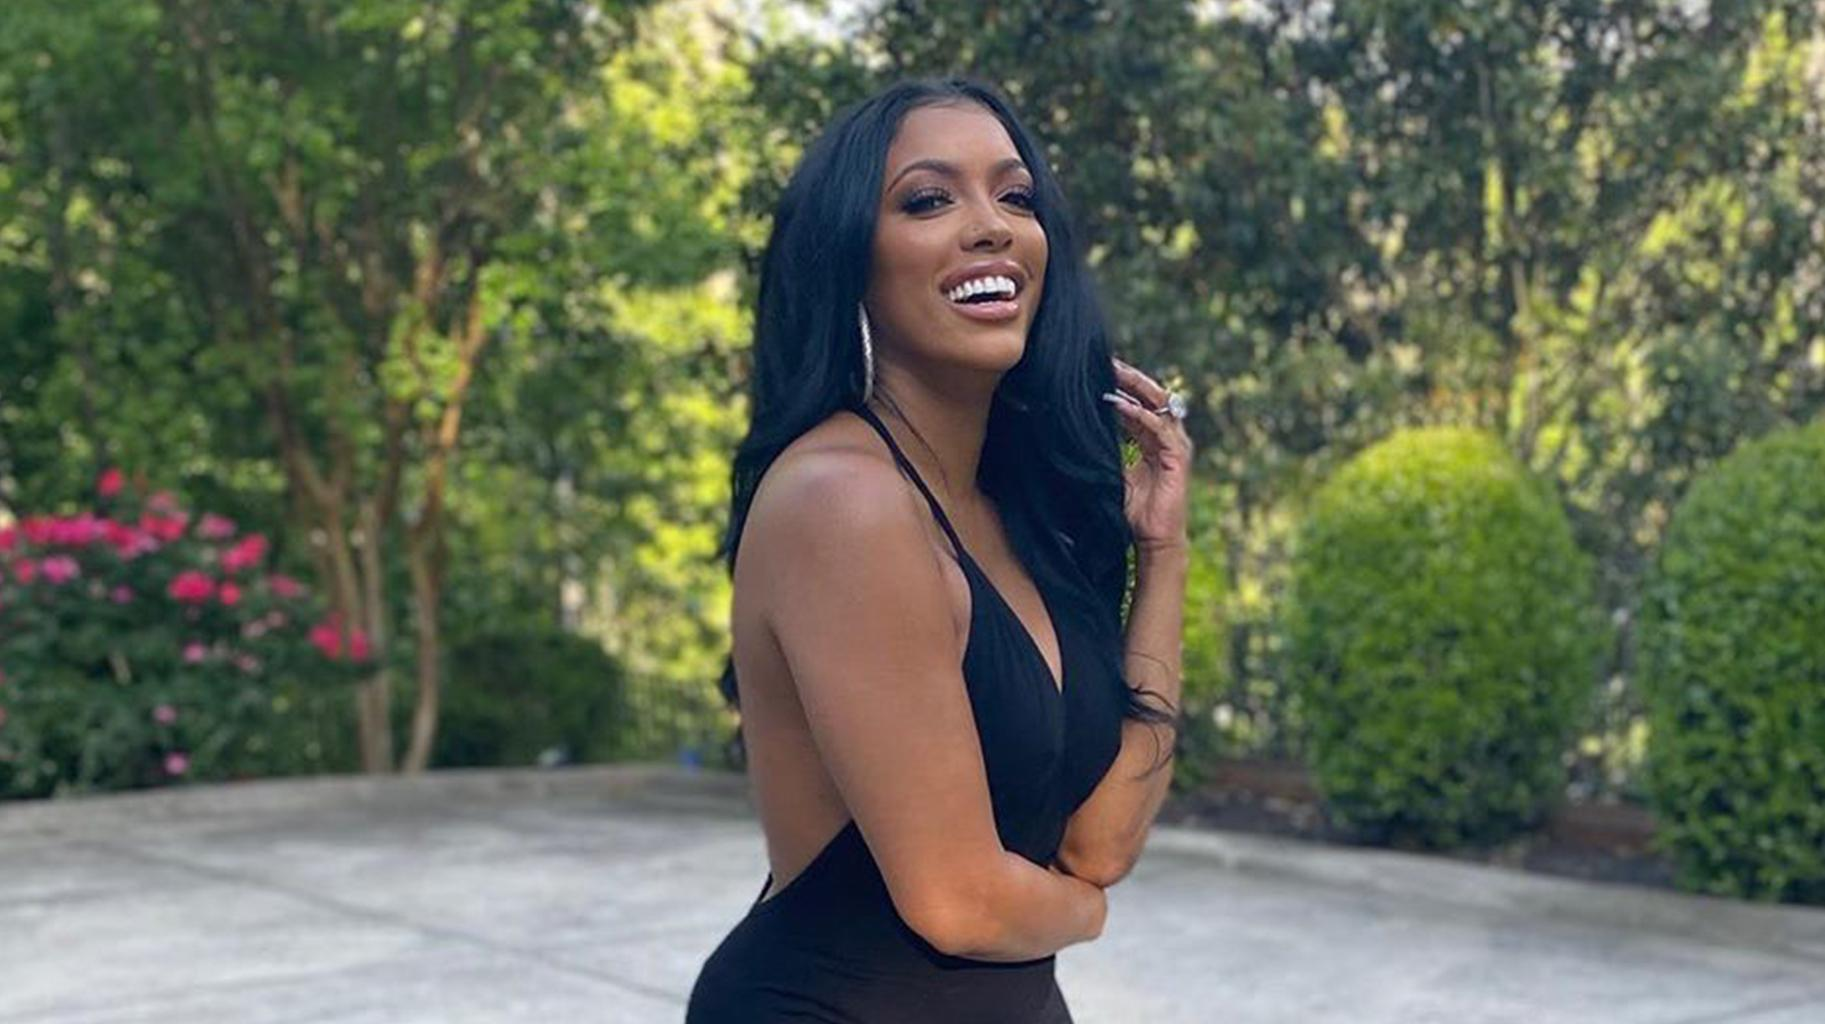 Porsha Williams Asks Fans Advice About Her Hair - Check Out Her Photos And Message Here